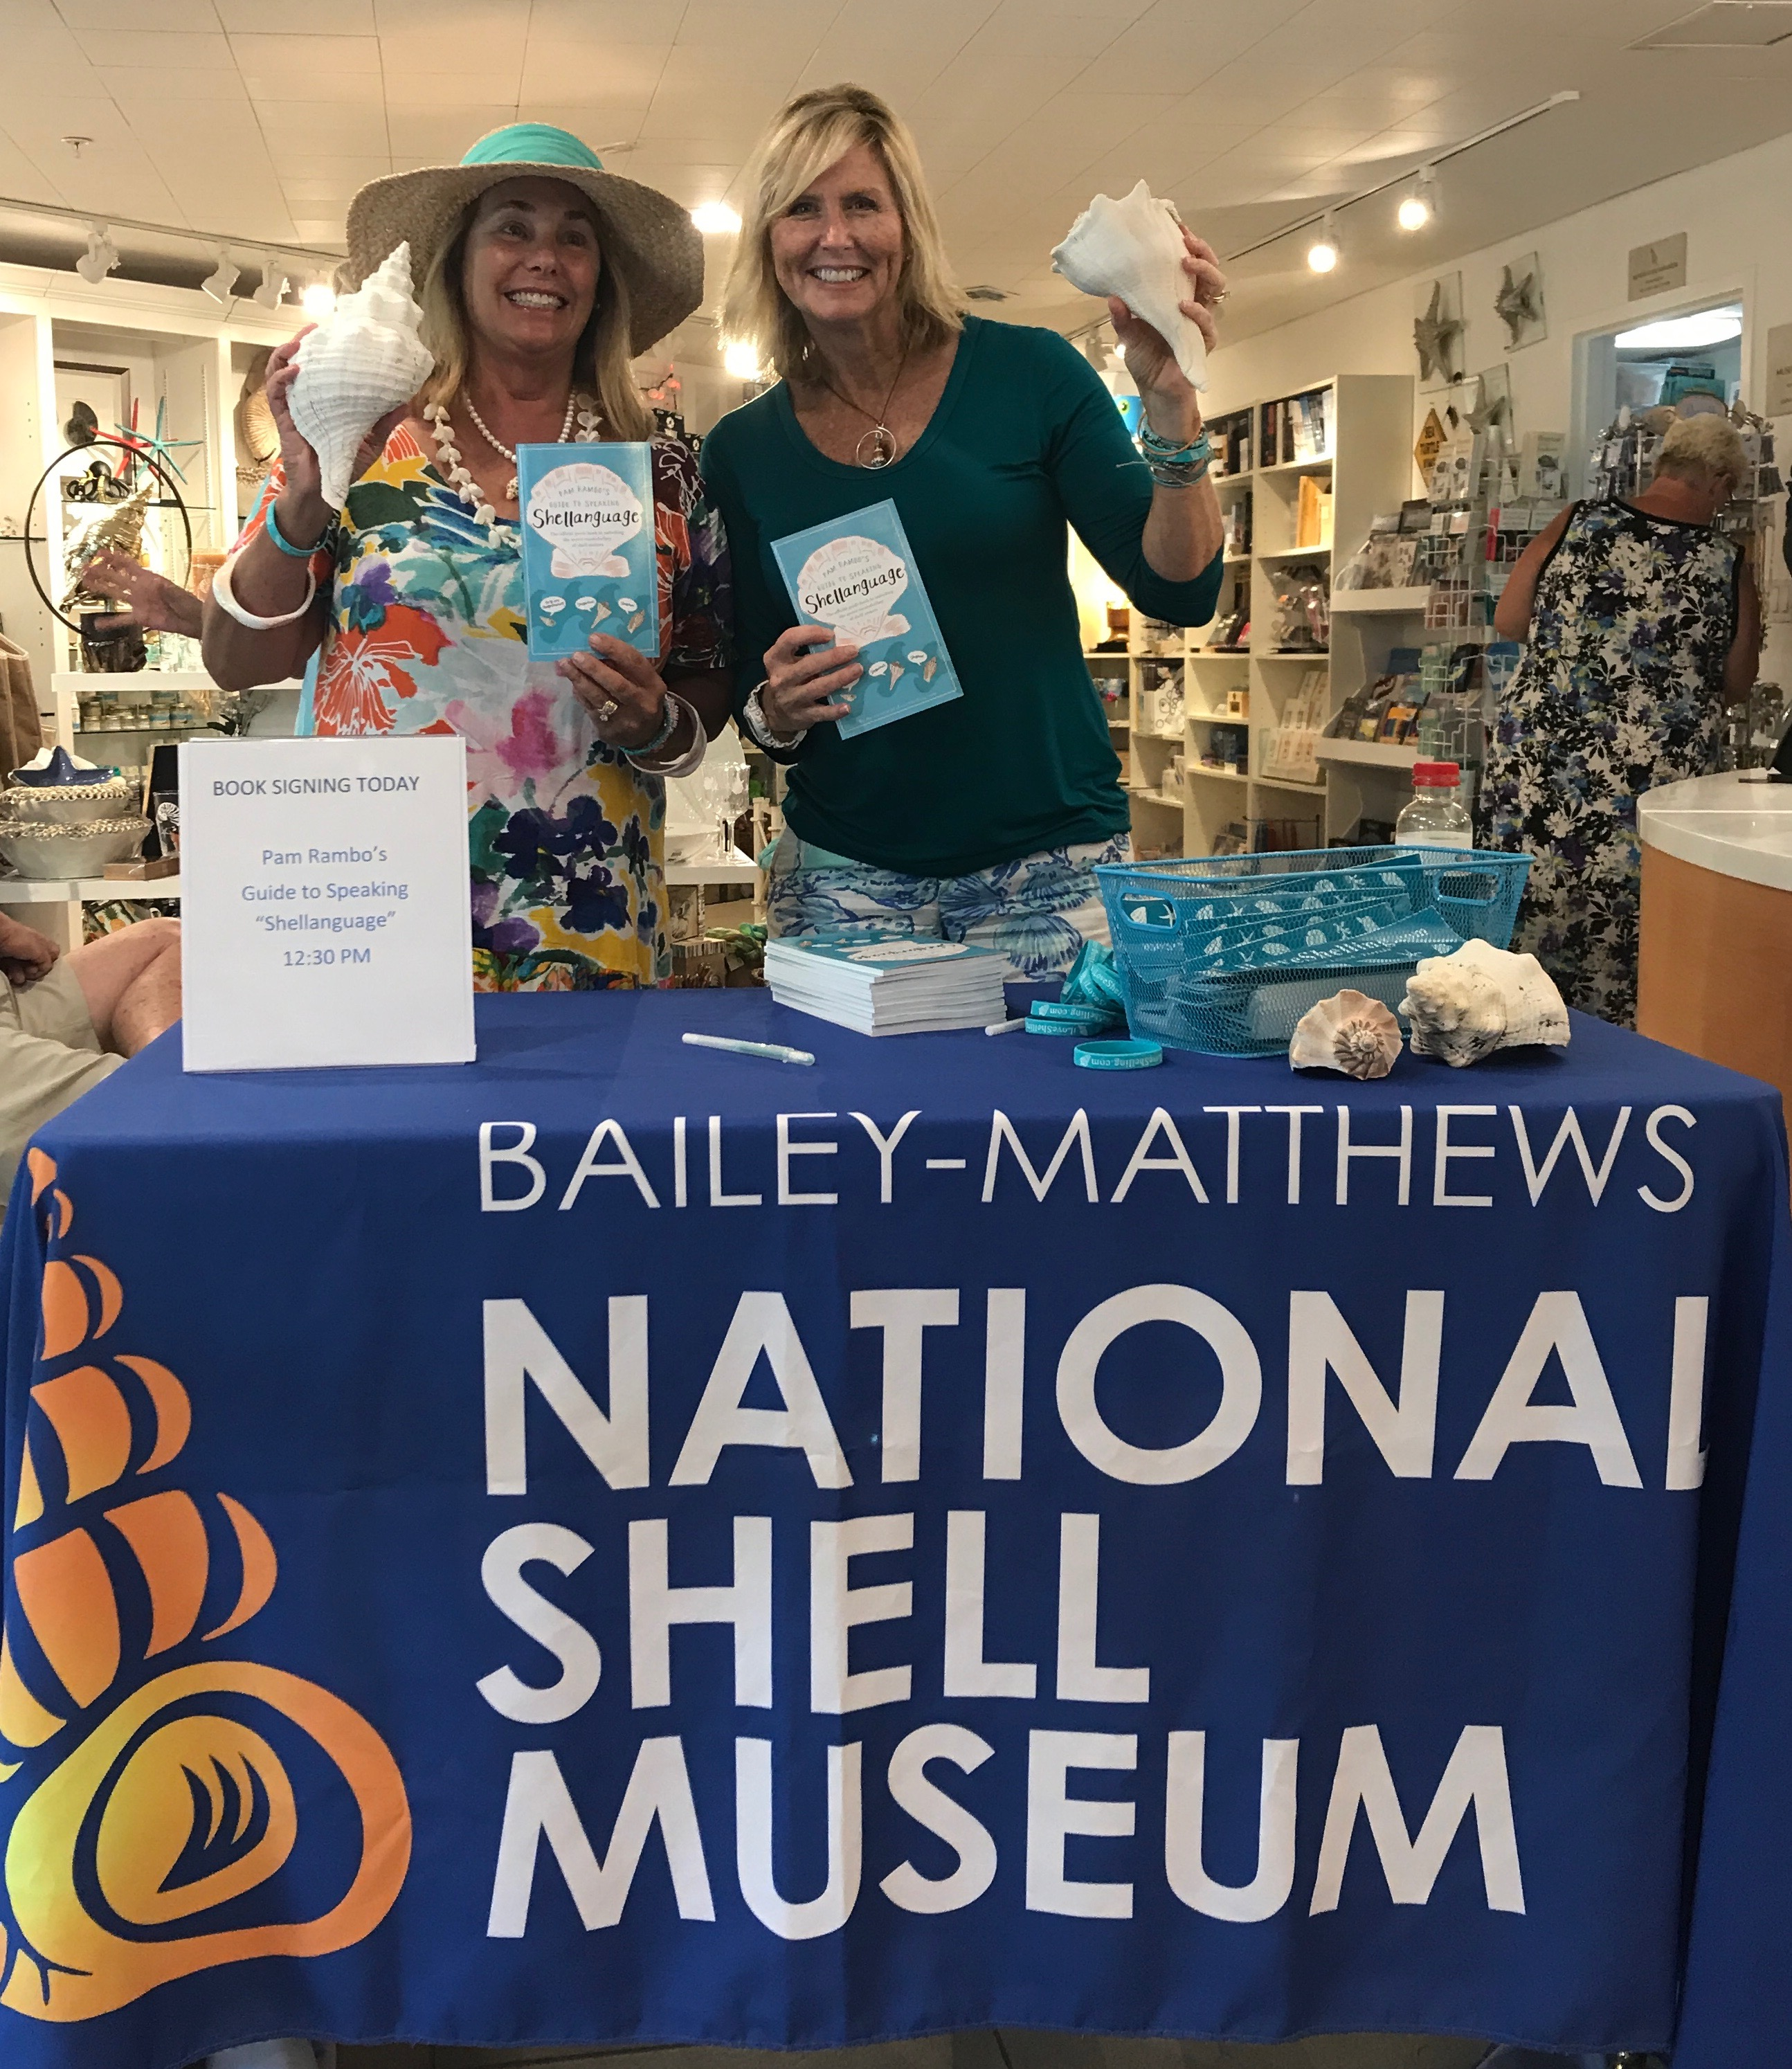 National Shell Museum With My New Guide To Speaking Shellanguage Book  Signing And Hanging Out With How To Eat Fried Worms